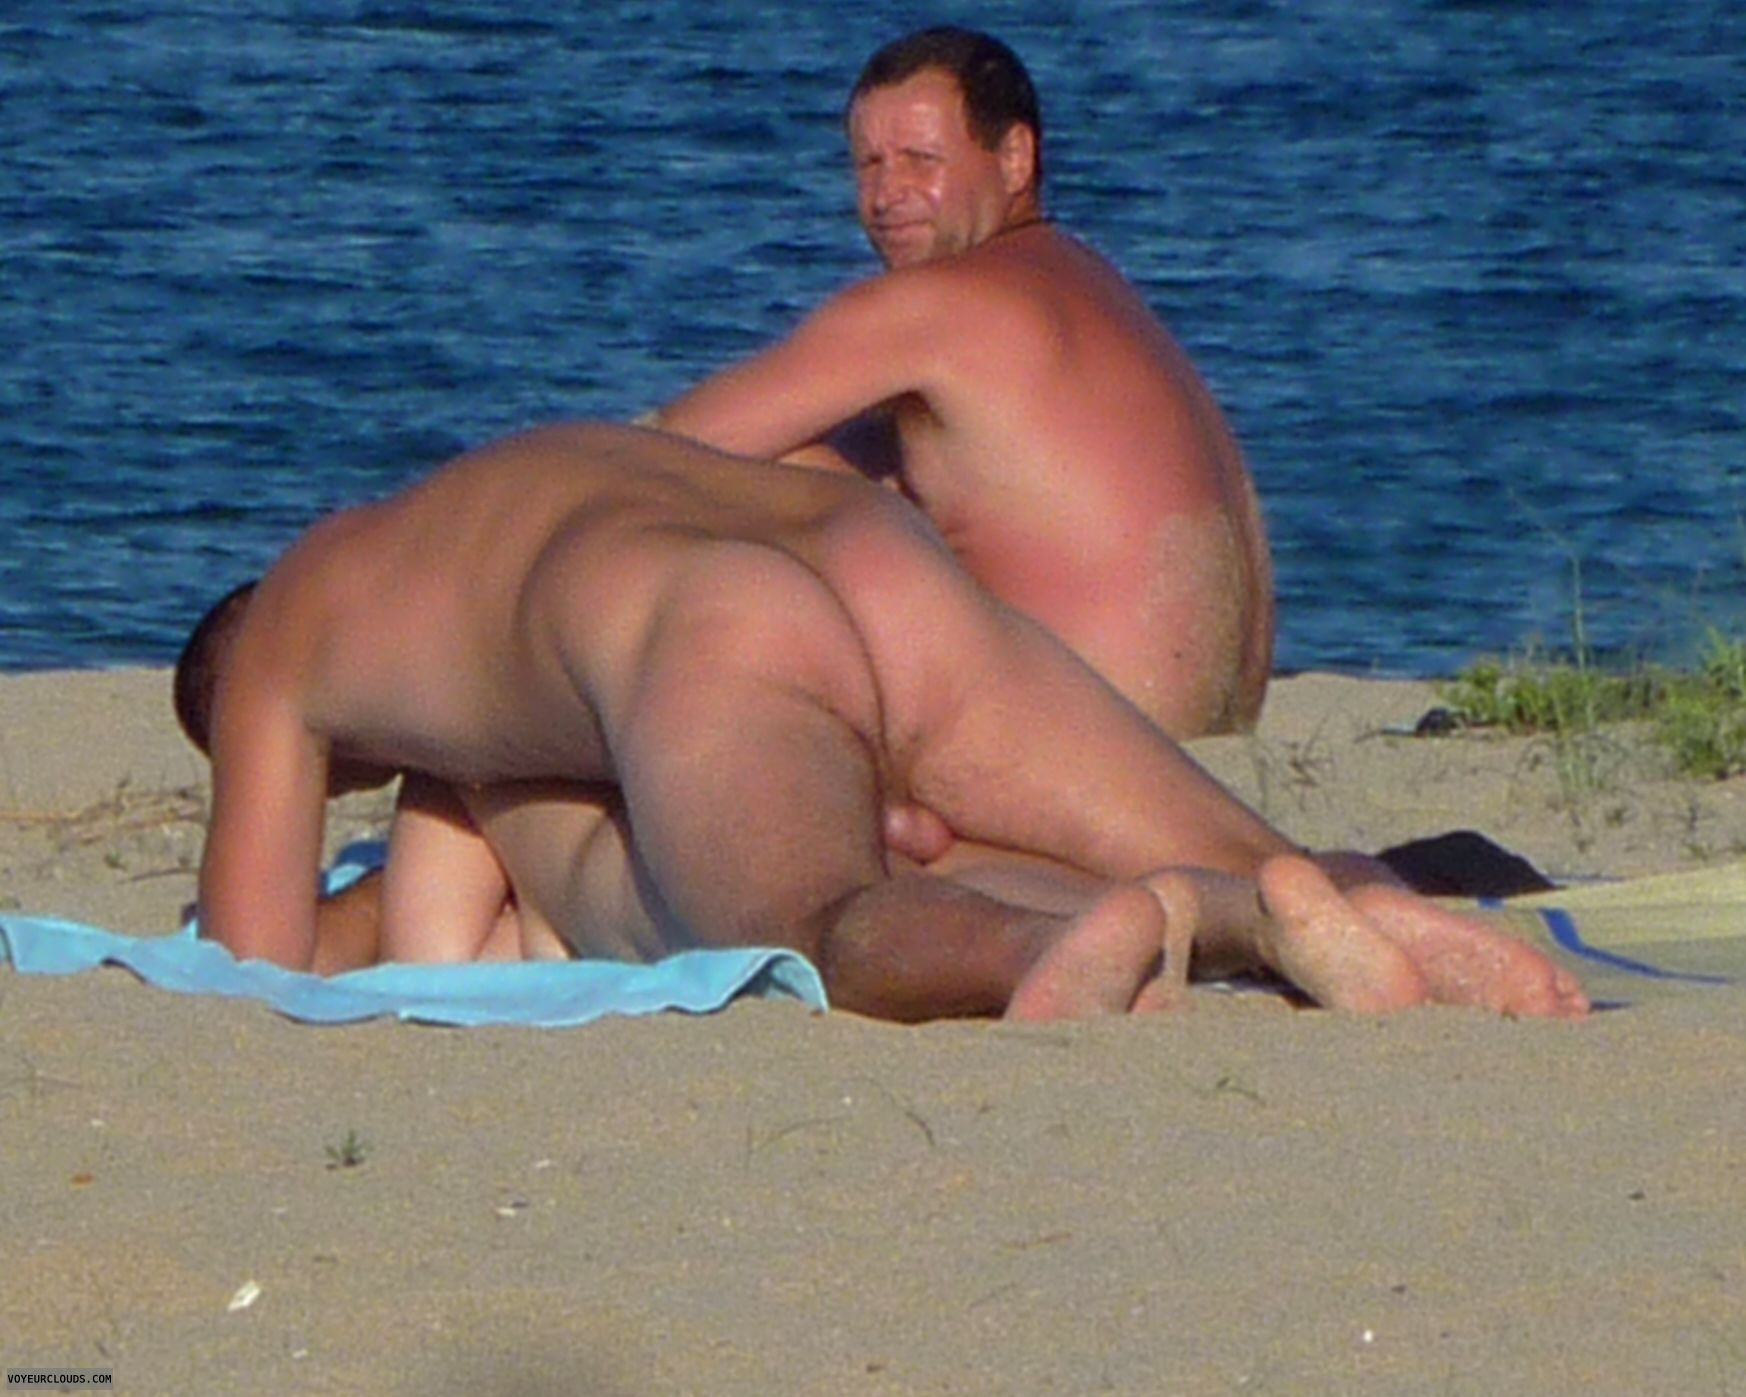 Voyeur nudity on beach